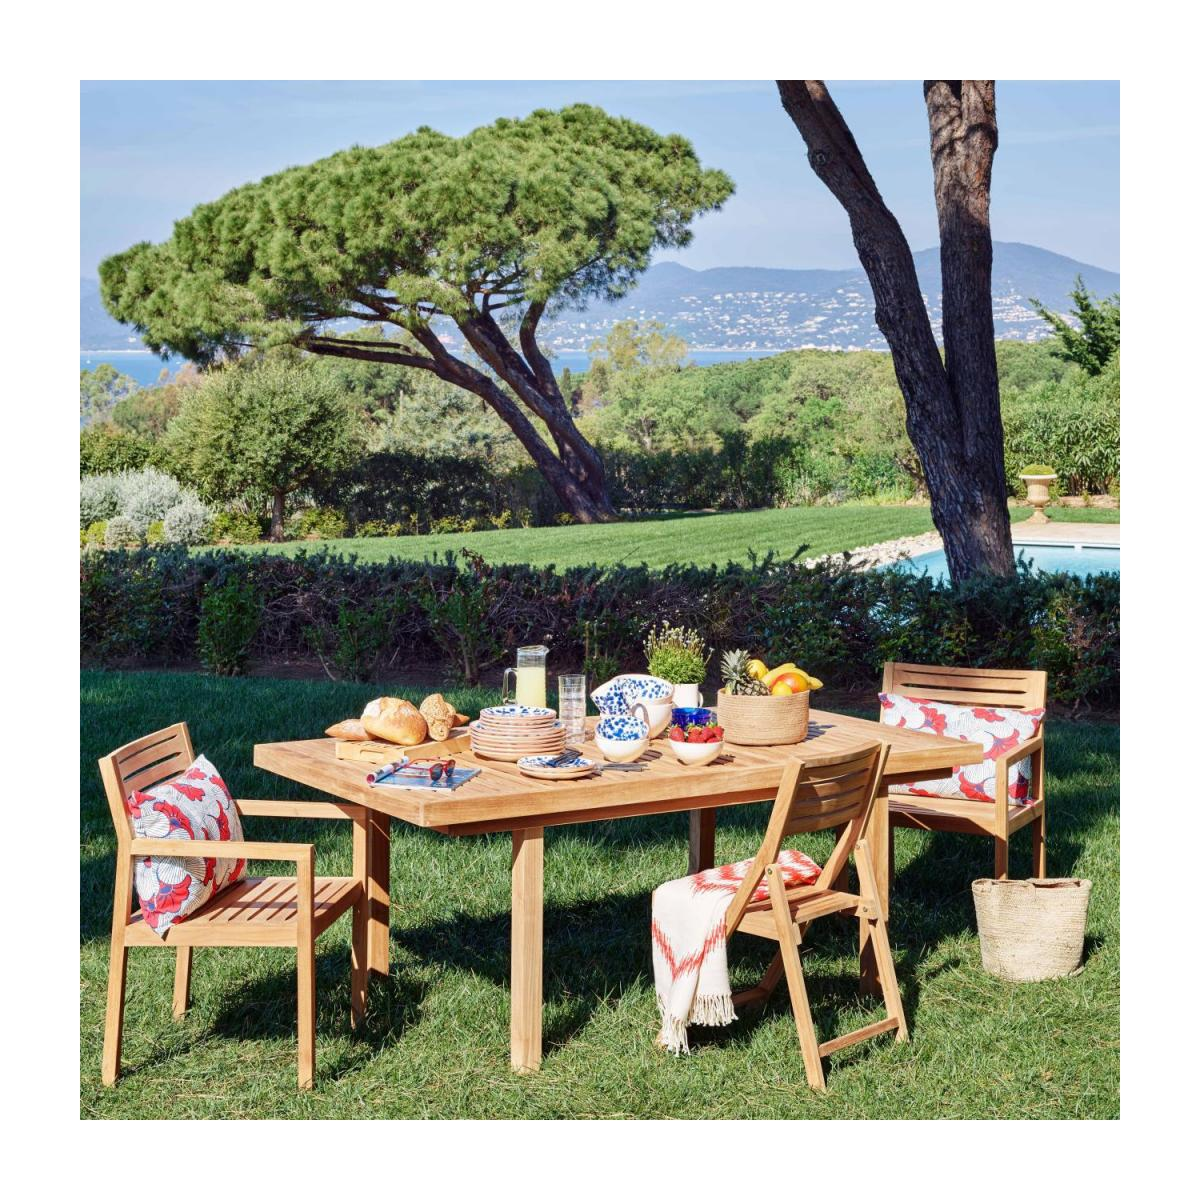 Teak extendible garden table n°11